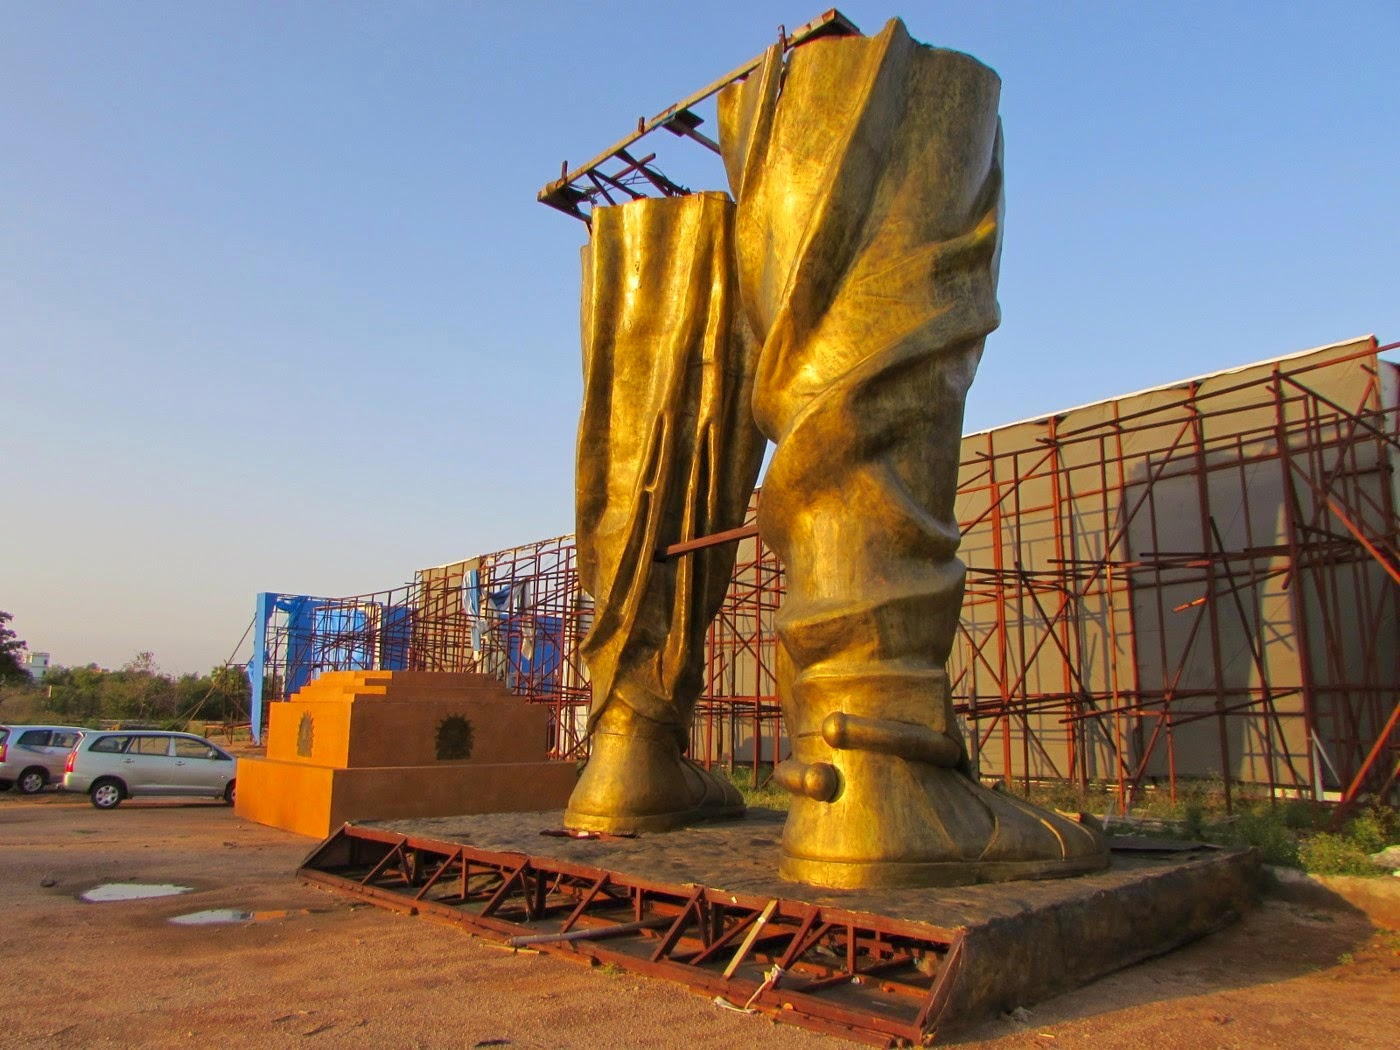 Baahubali Sets - The World Of Baahubali Sneak Peak HD images | Rajamouli | Prabhas | Anushka